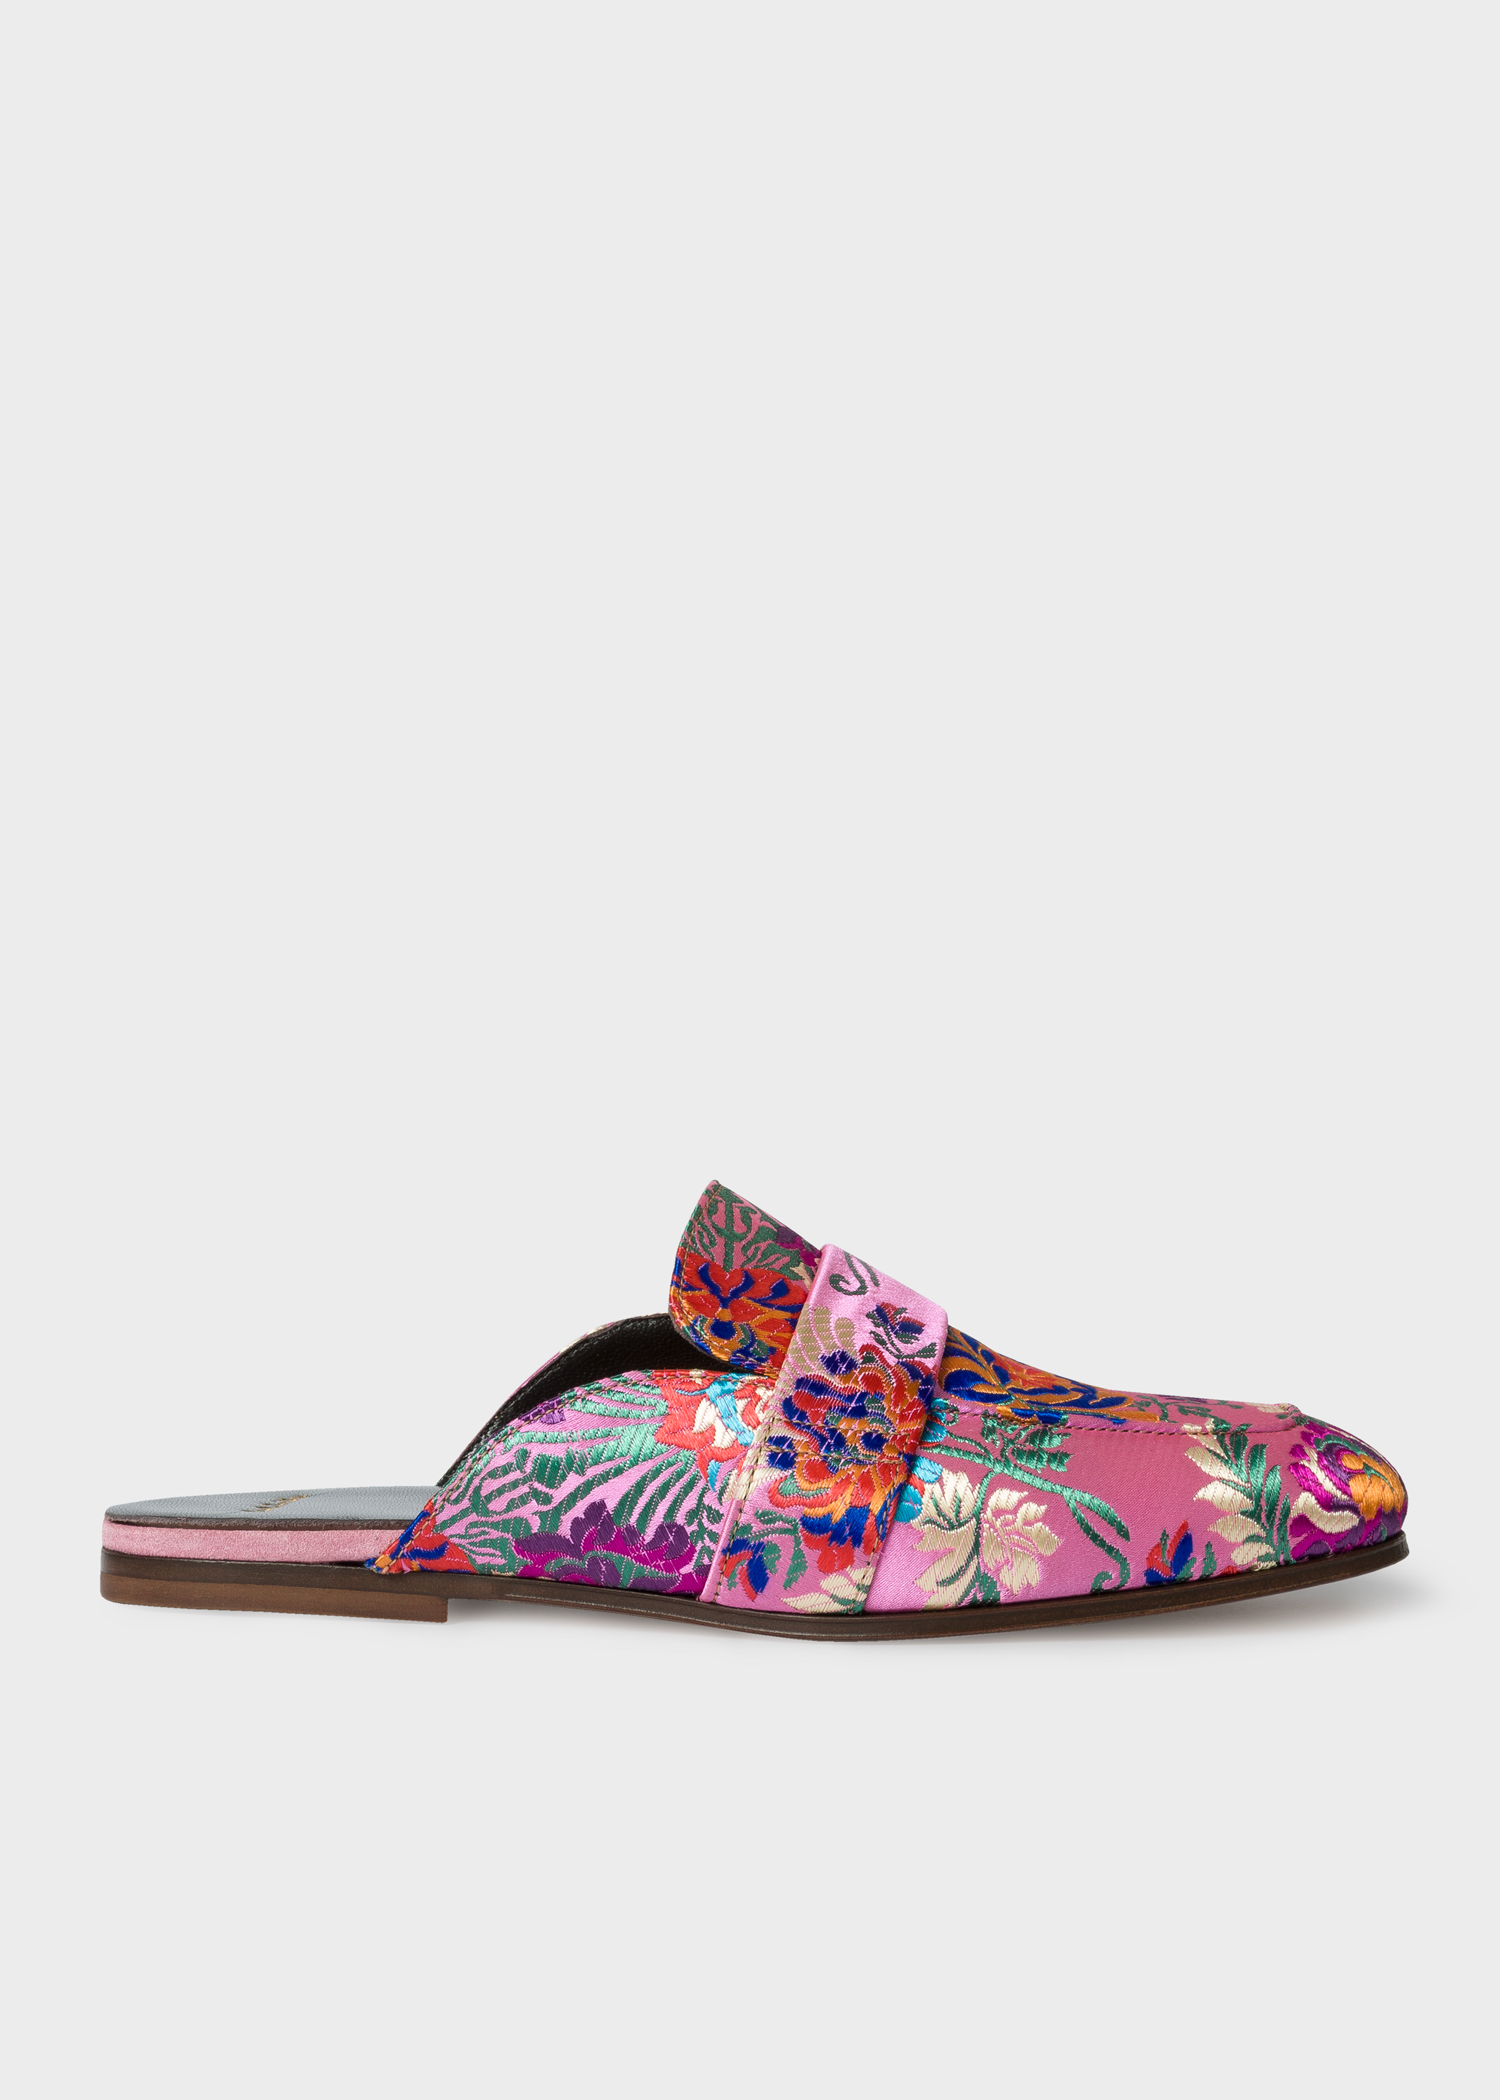 fff8623d531e4 Side view - Women's Pink Floral Jacquard 'Joni' Mules Paul Smith